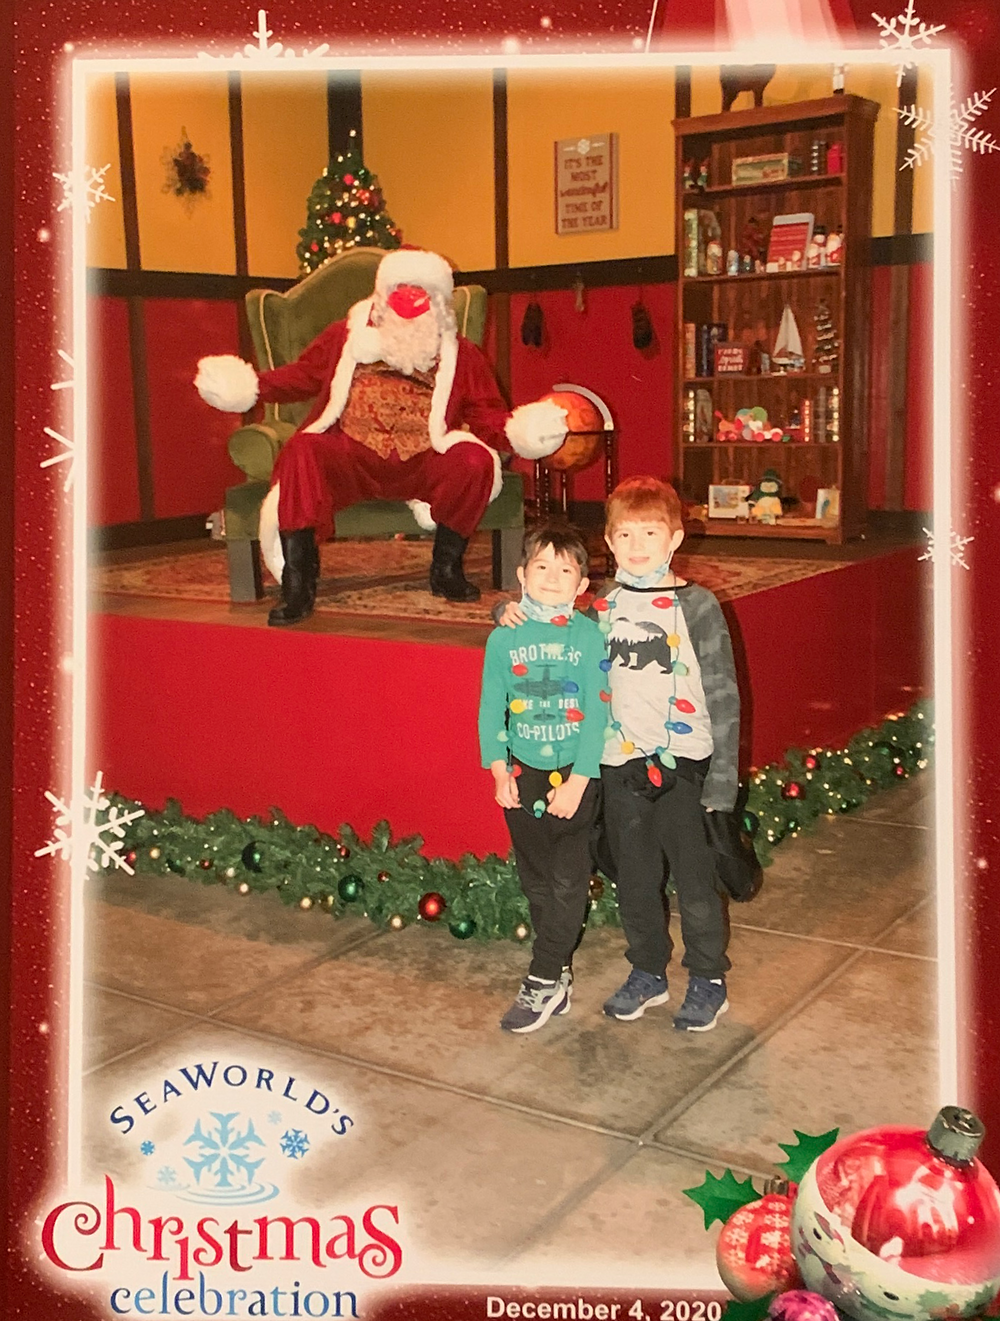 Santa Photos in San Diego that are still open during the stay at home orders